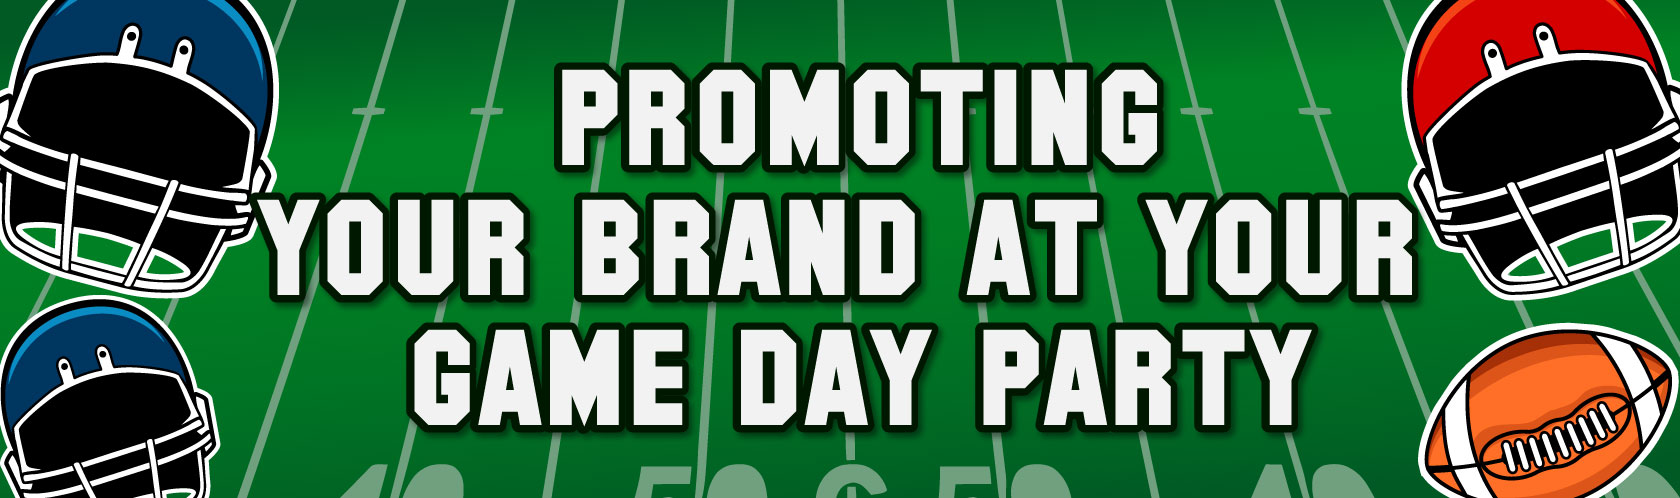 Promoting Your Brand at Your Game Day Party